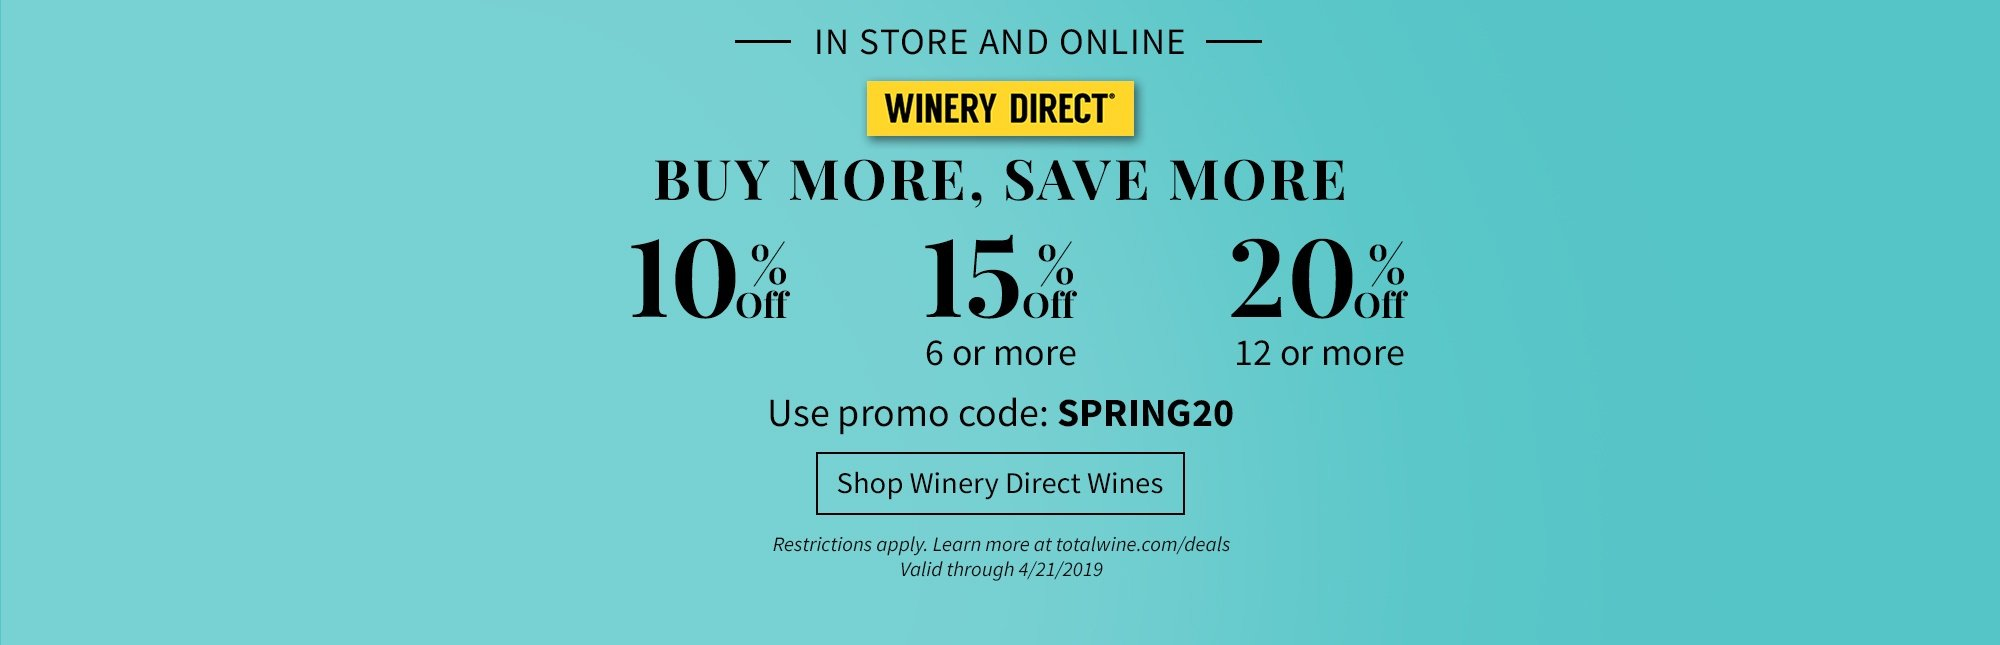 b6e5a77e45 Shop Winery Direct Wines. In store and online. Buy more